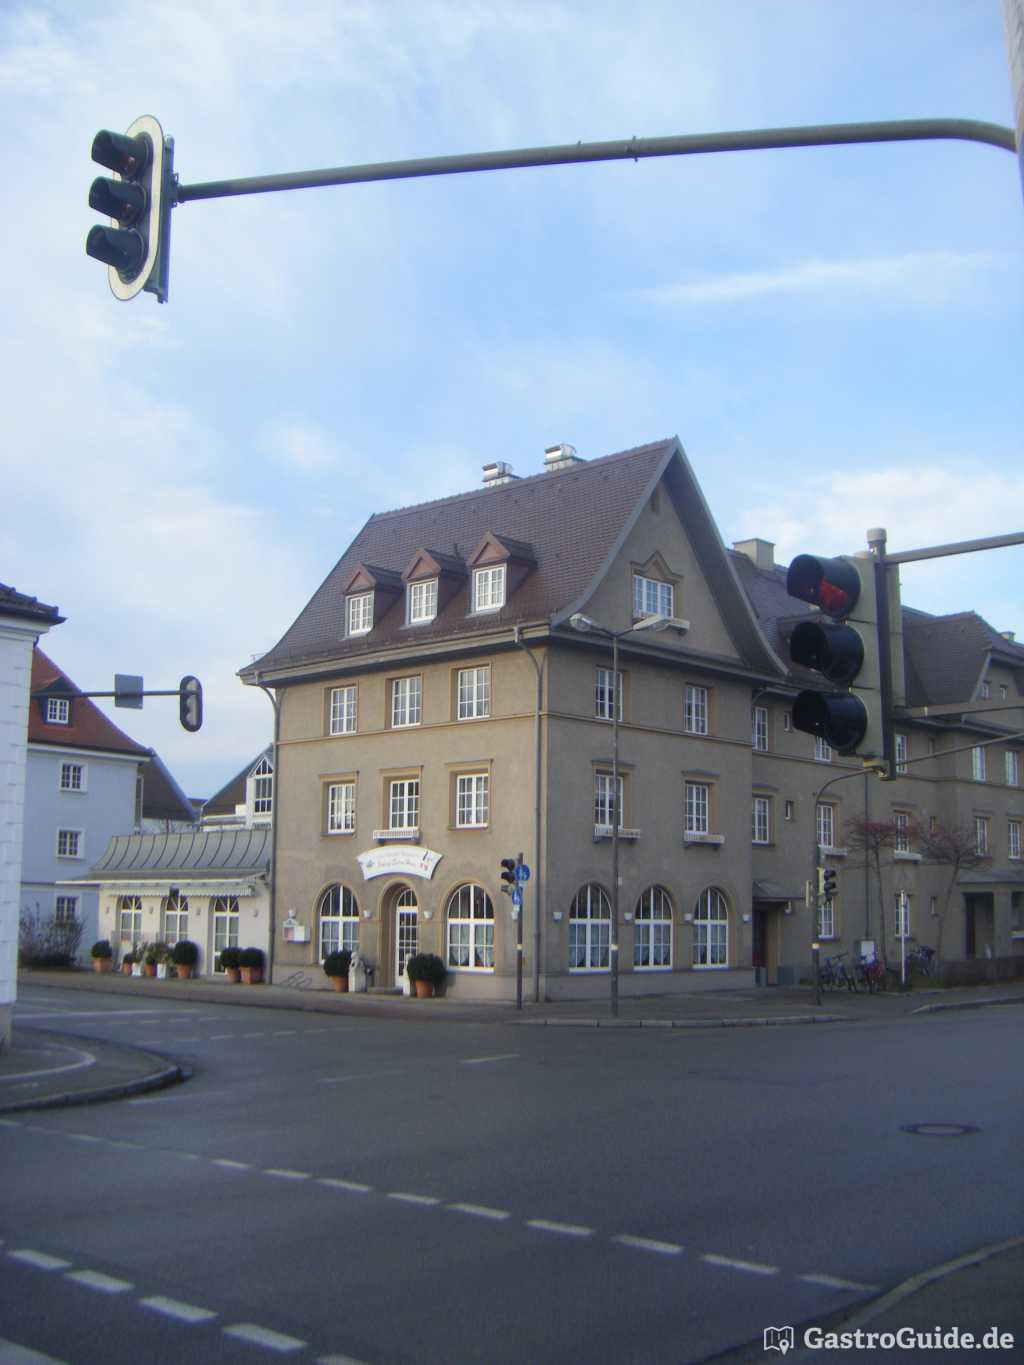 Peking Enten Haus Restaurant in Burghausen